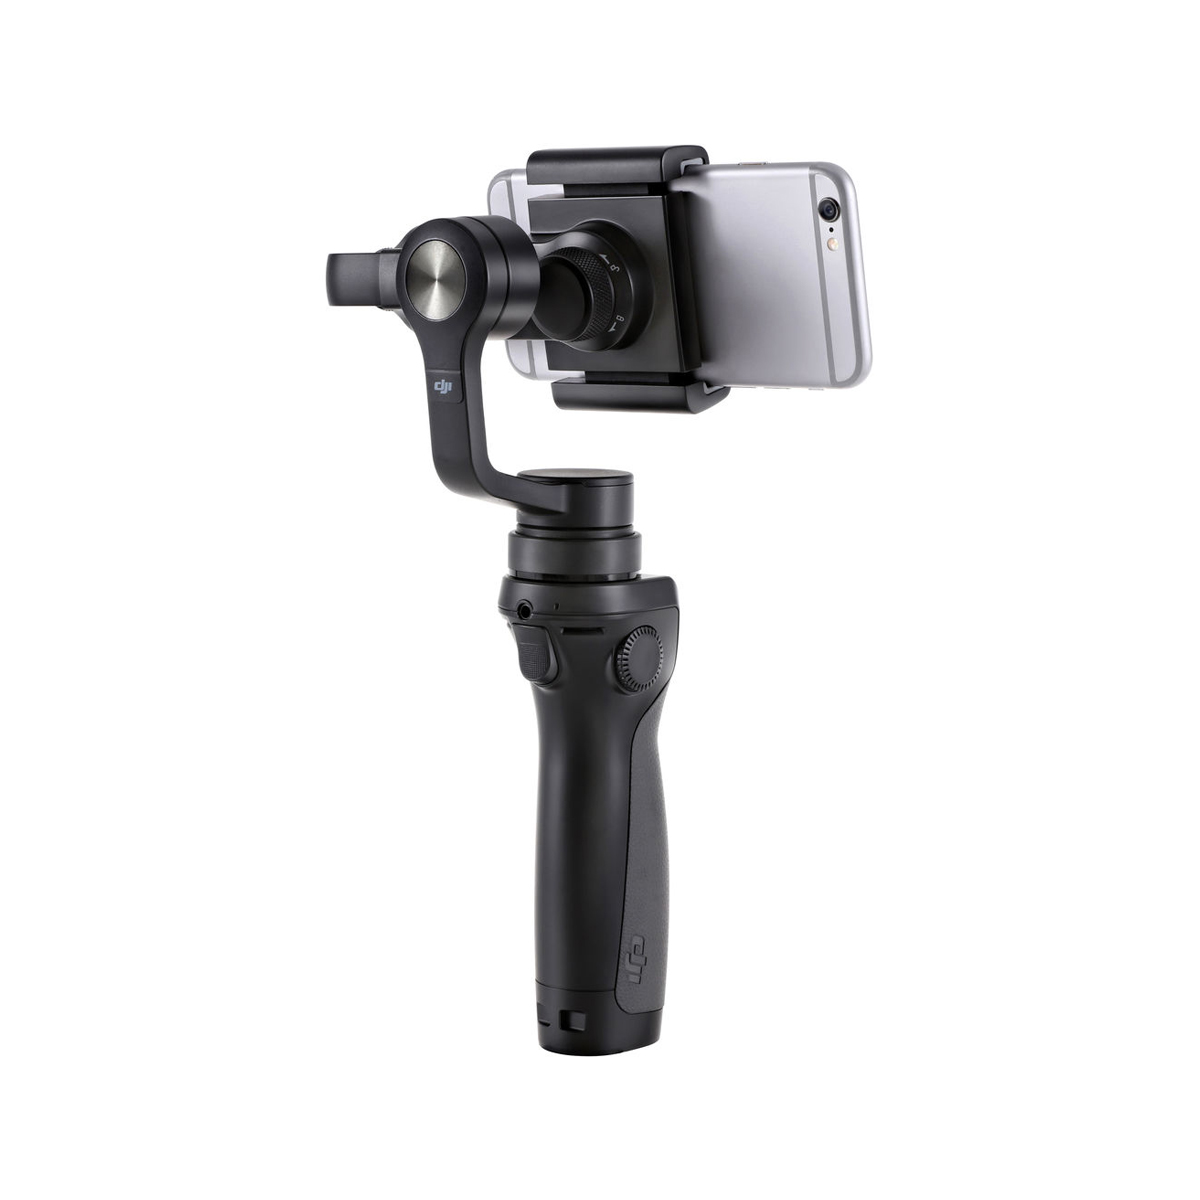 Dji Osmo Mobile Gimbal Stabilizer For Smartphones The